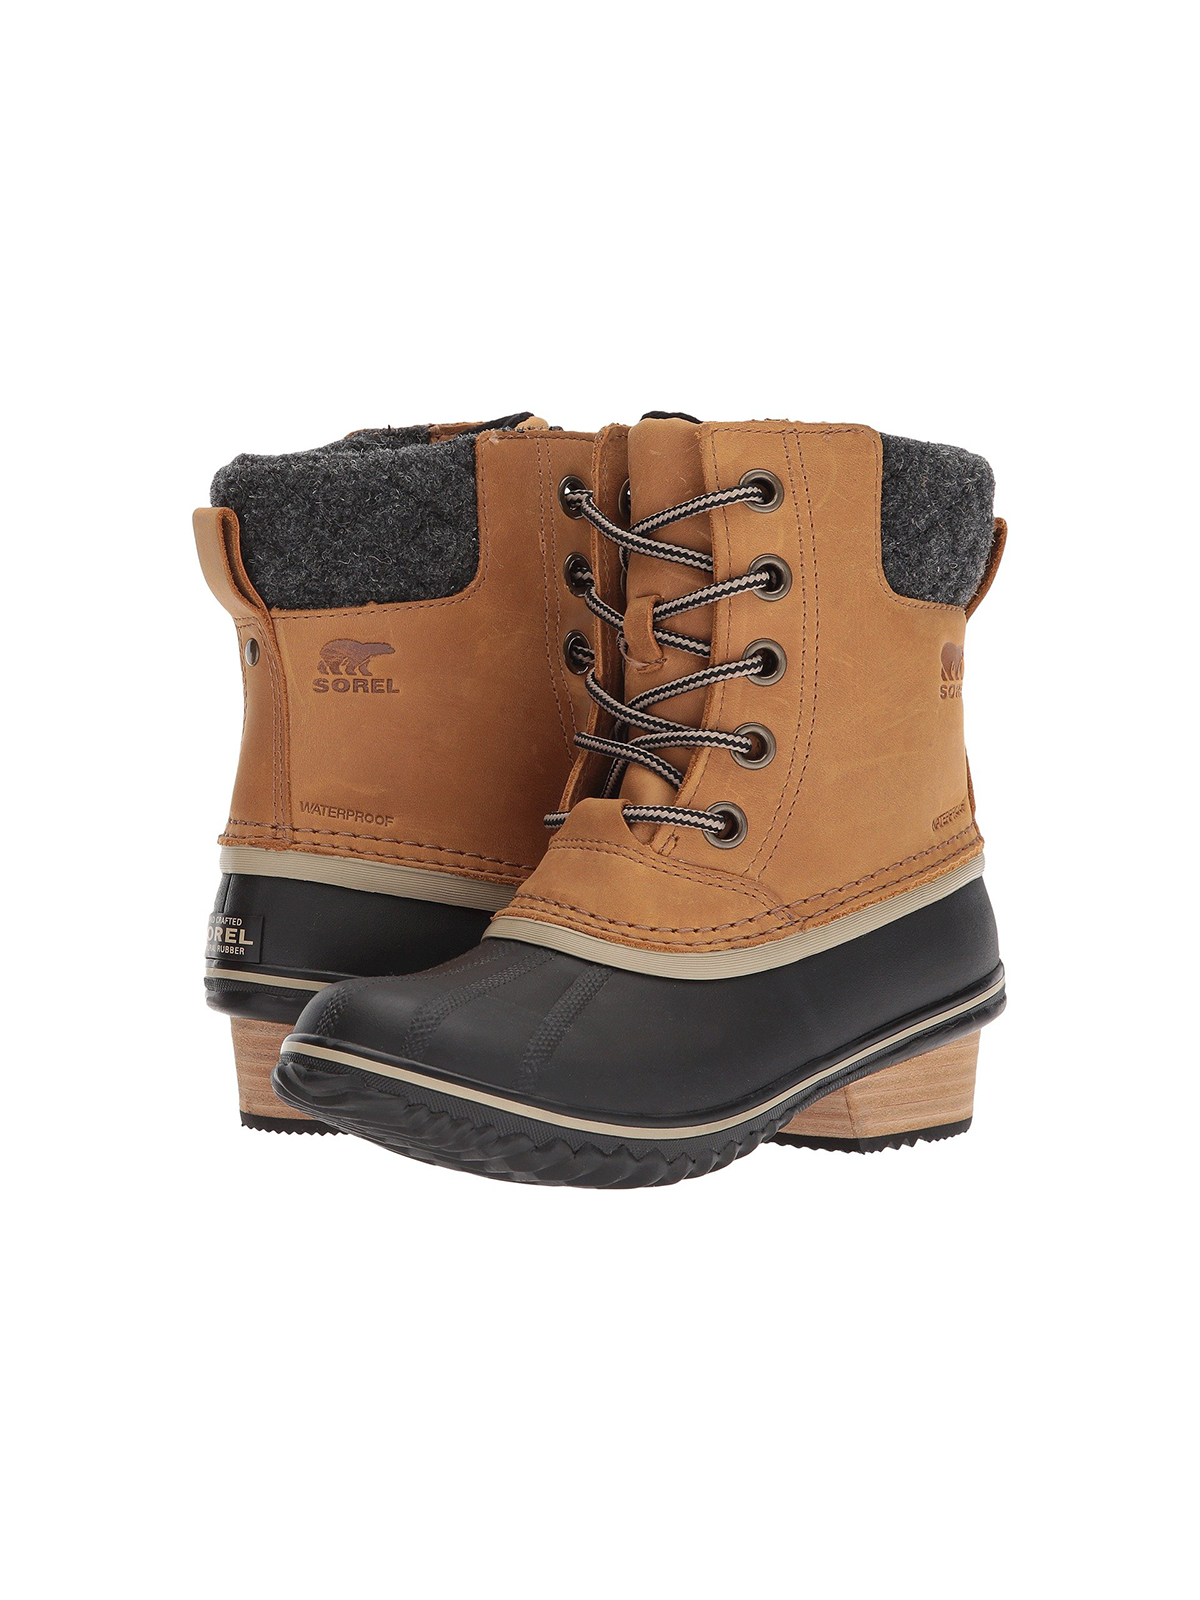 Womens Winter Boots, Sorel Slimpack in black and brown